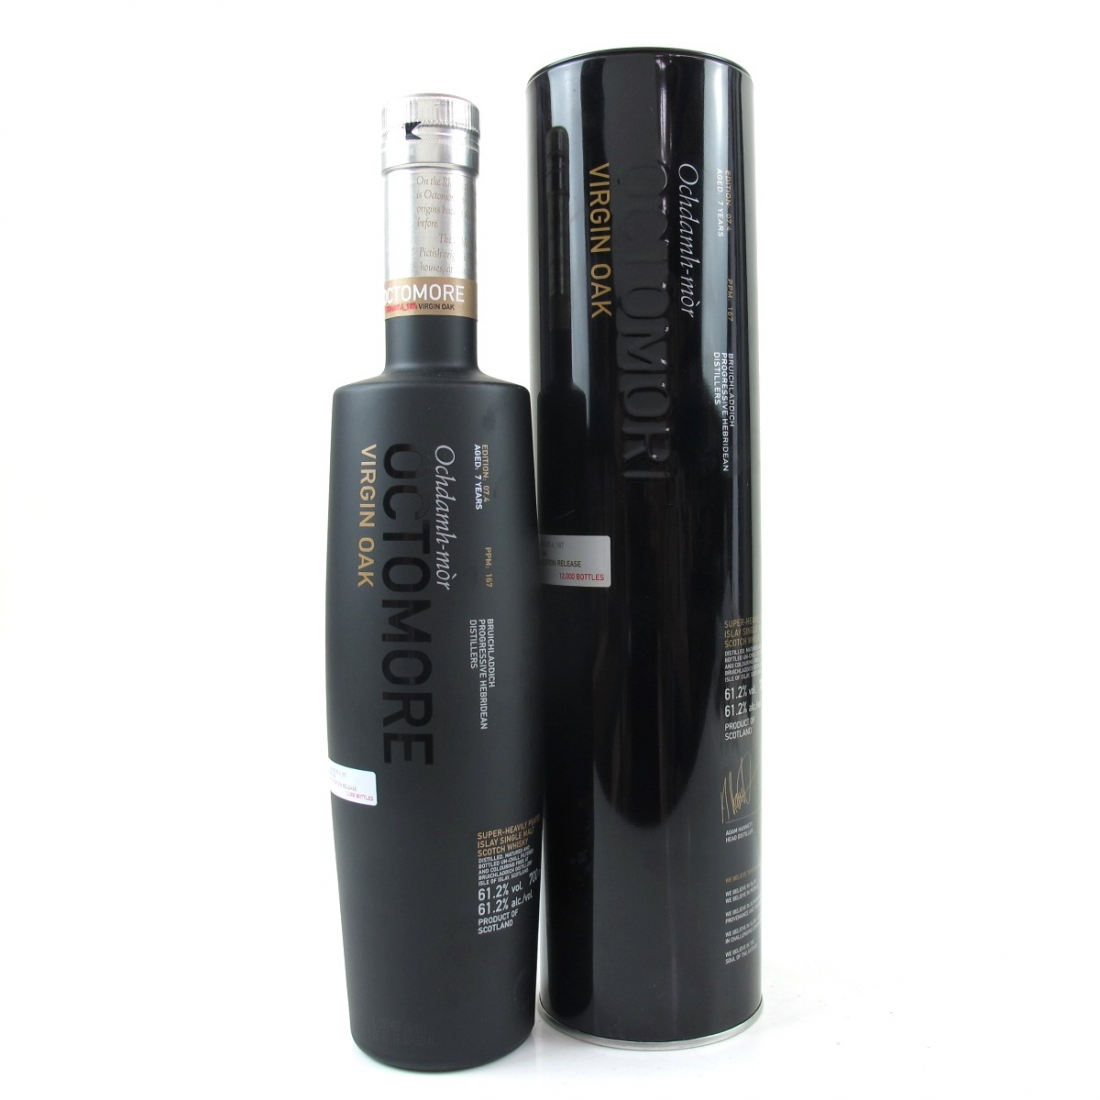 Octomore 7.4